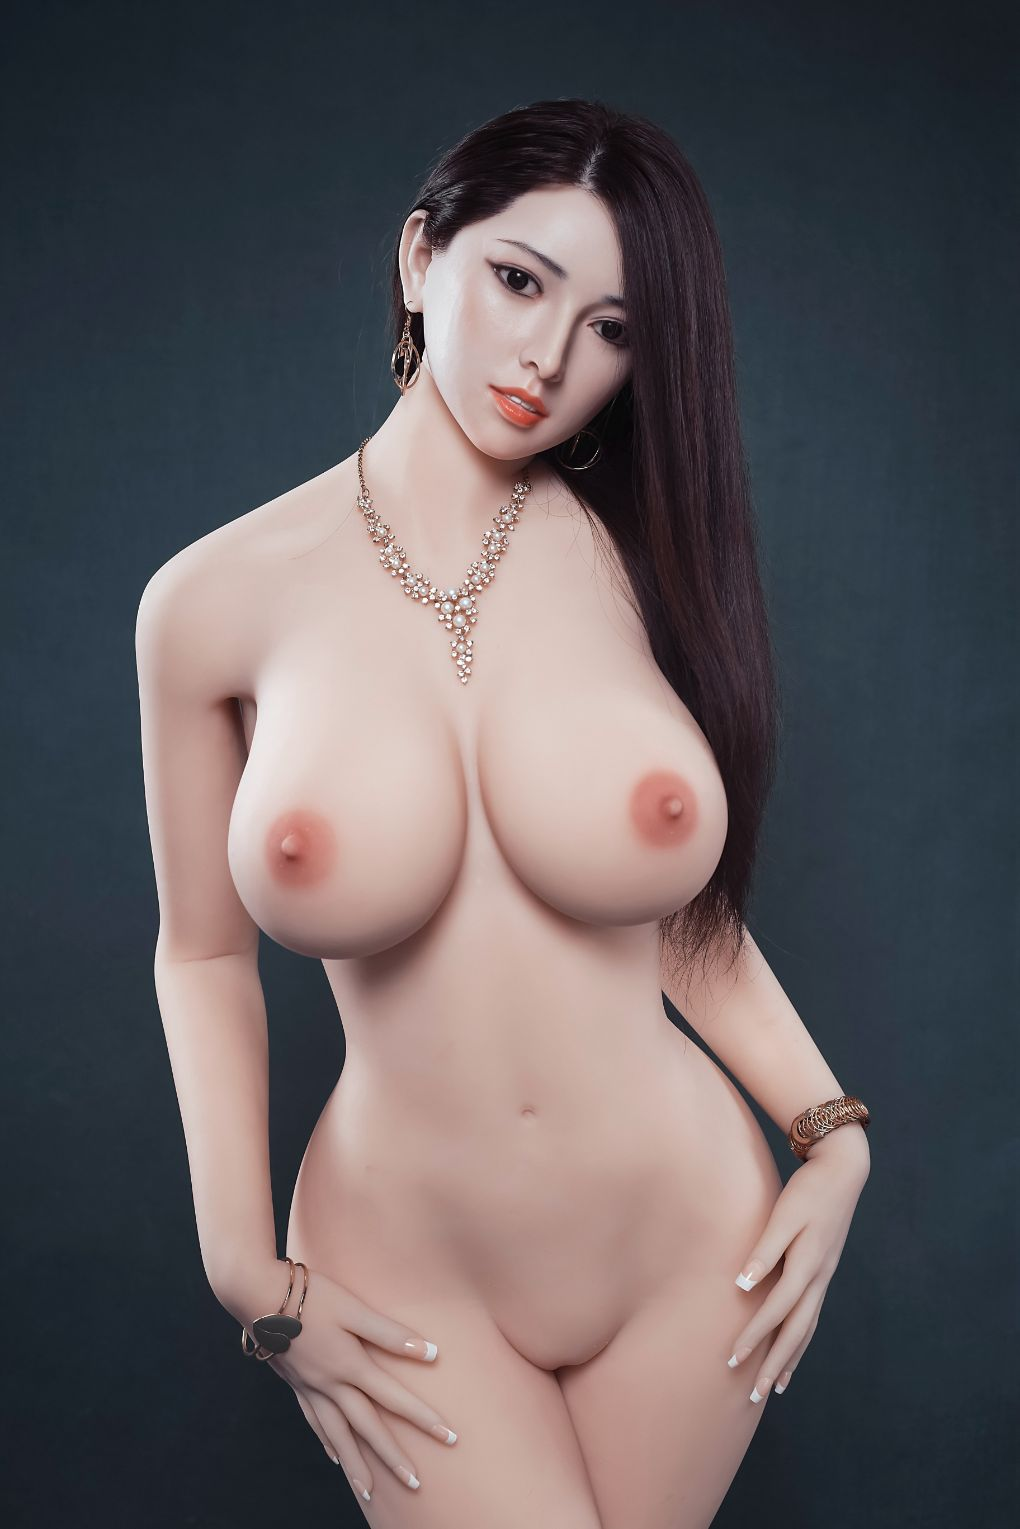 addison 166cm af black hair big boobs athletic tpe sex doll(8)